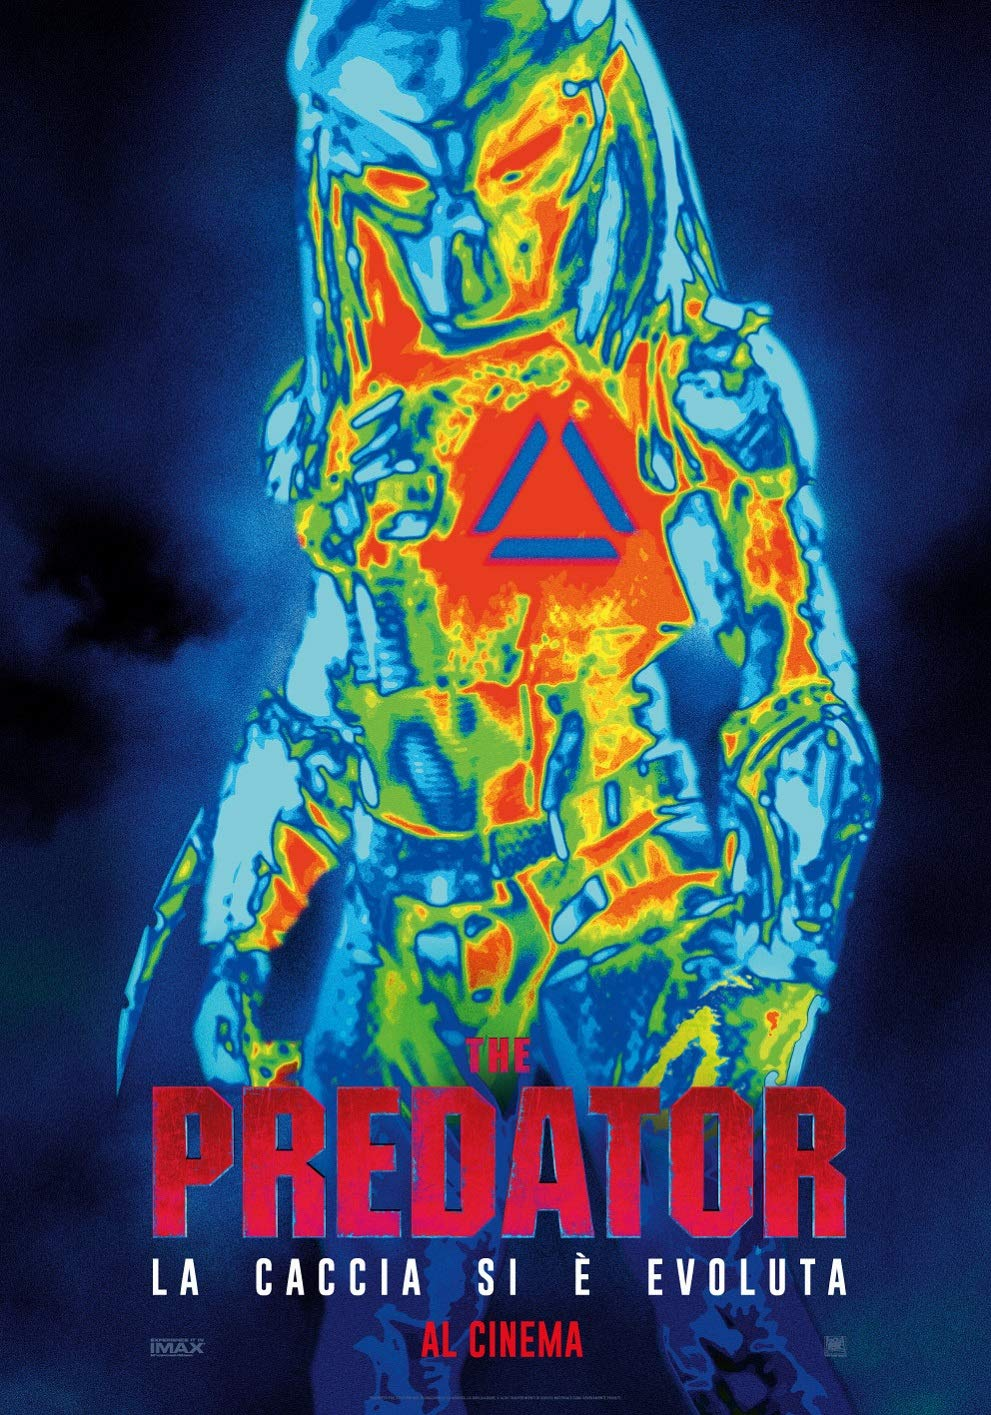 THE PREDATOR (2018) (STEELBOOK) - BLU RAY